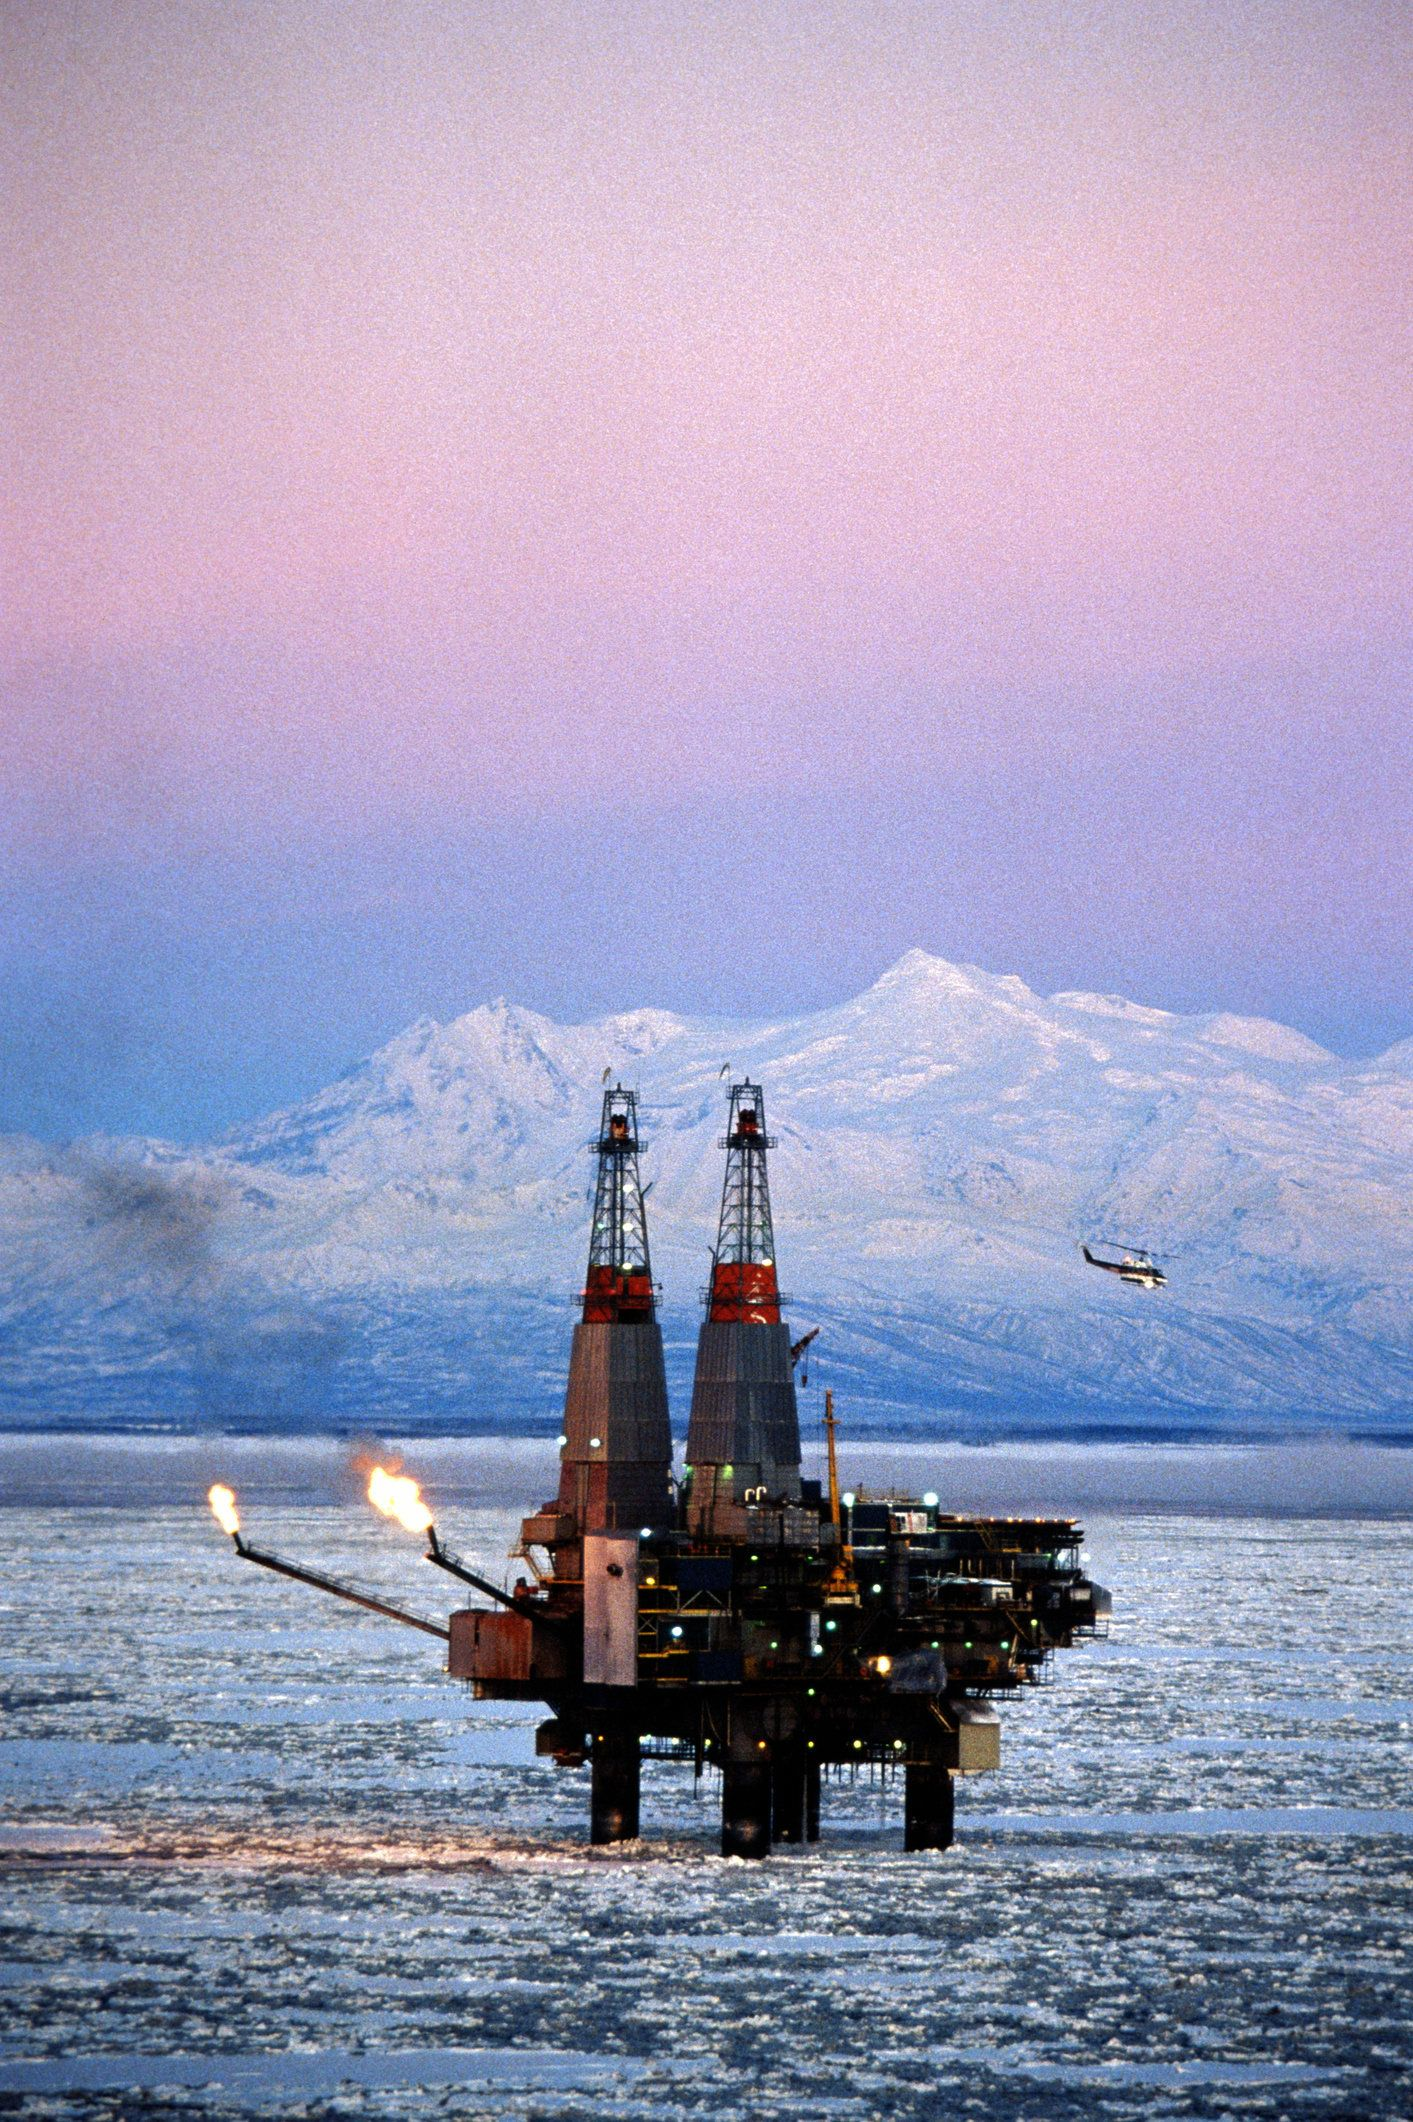 Mt.Spurr in background. Oilfields located under the sea are located and exploited by the construction and operation of offshore oil rigs.